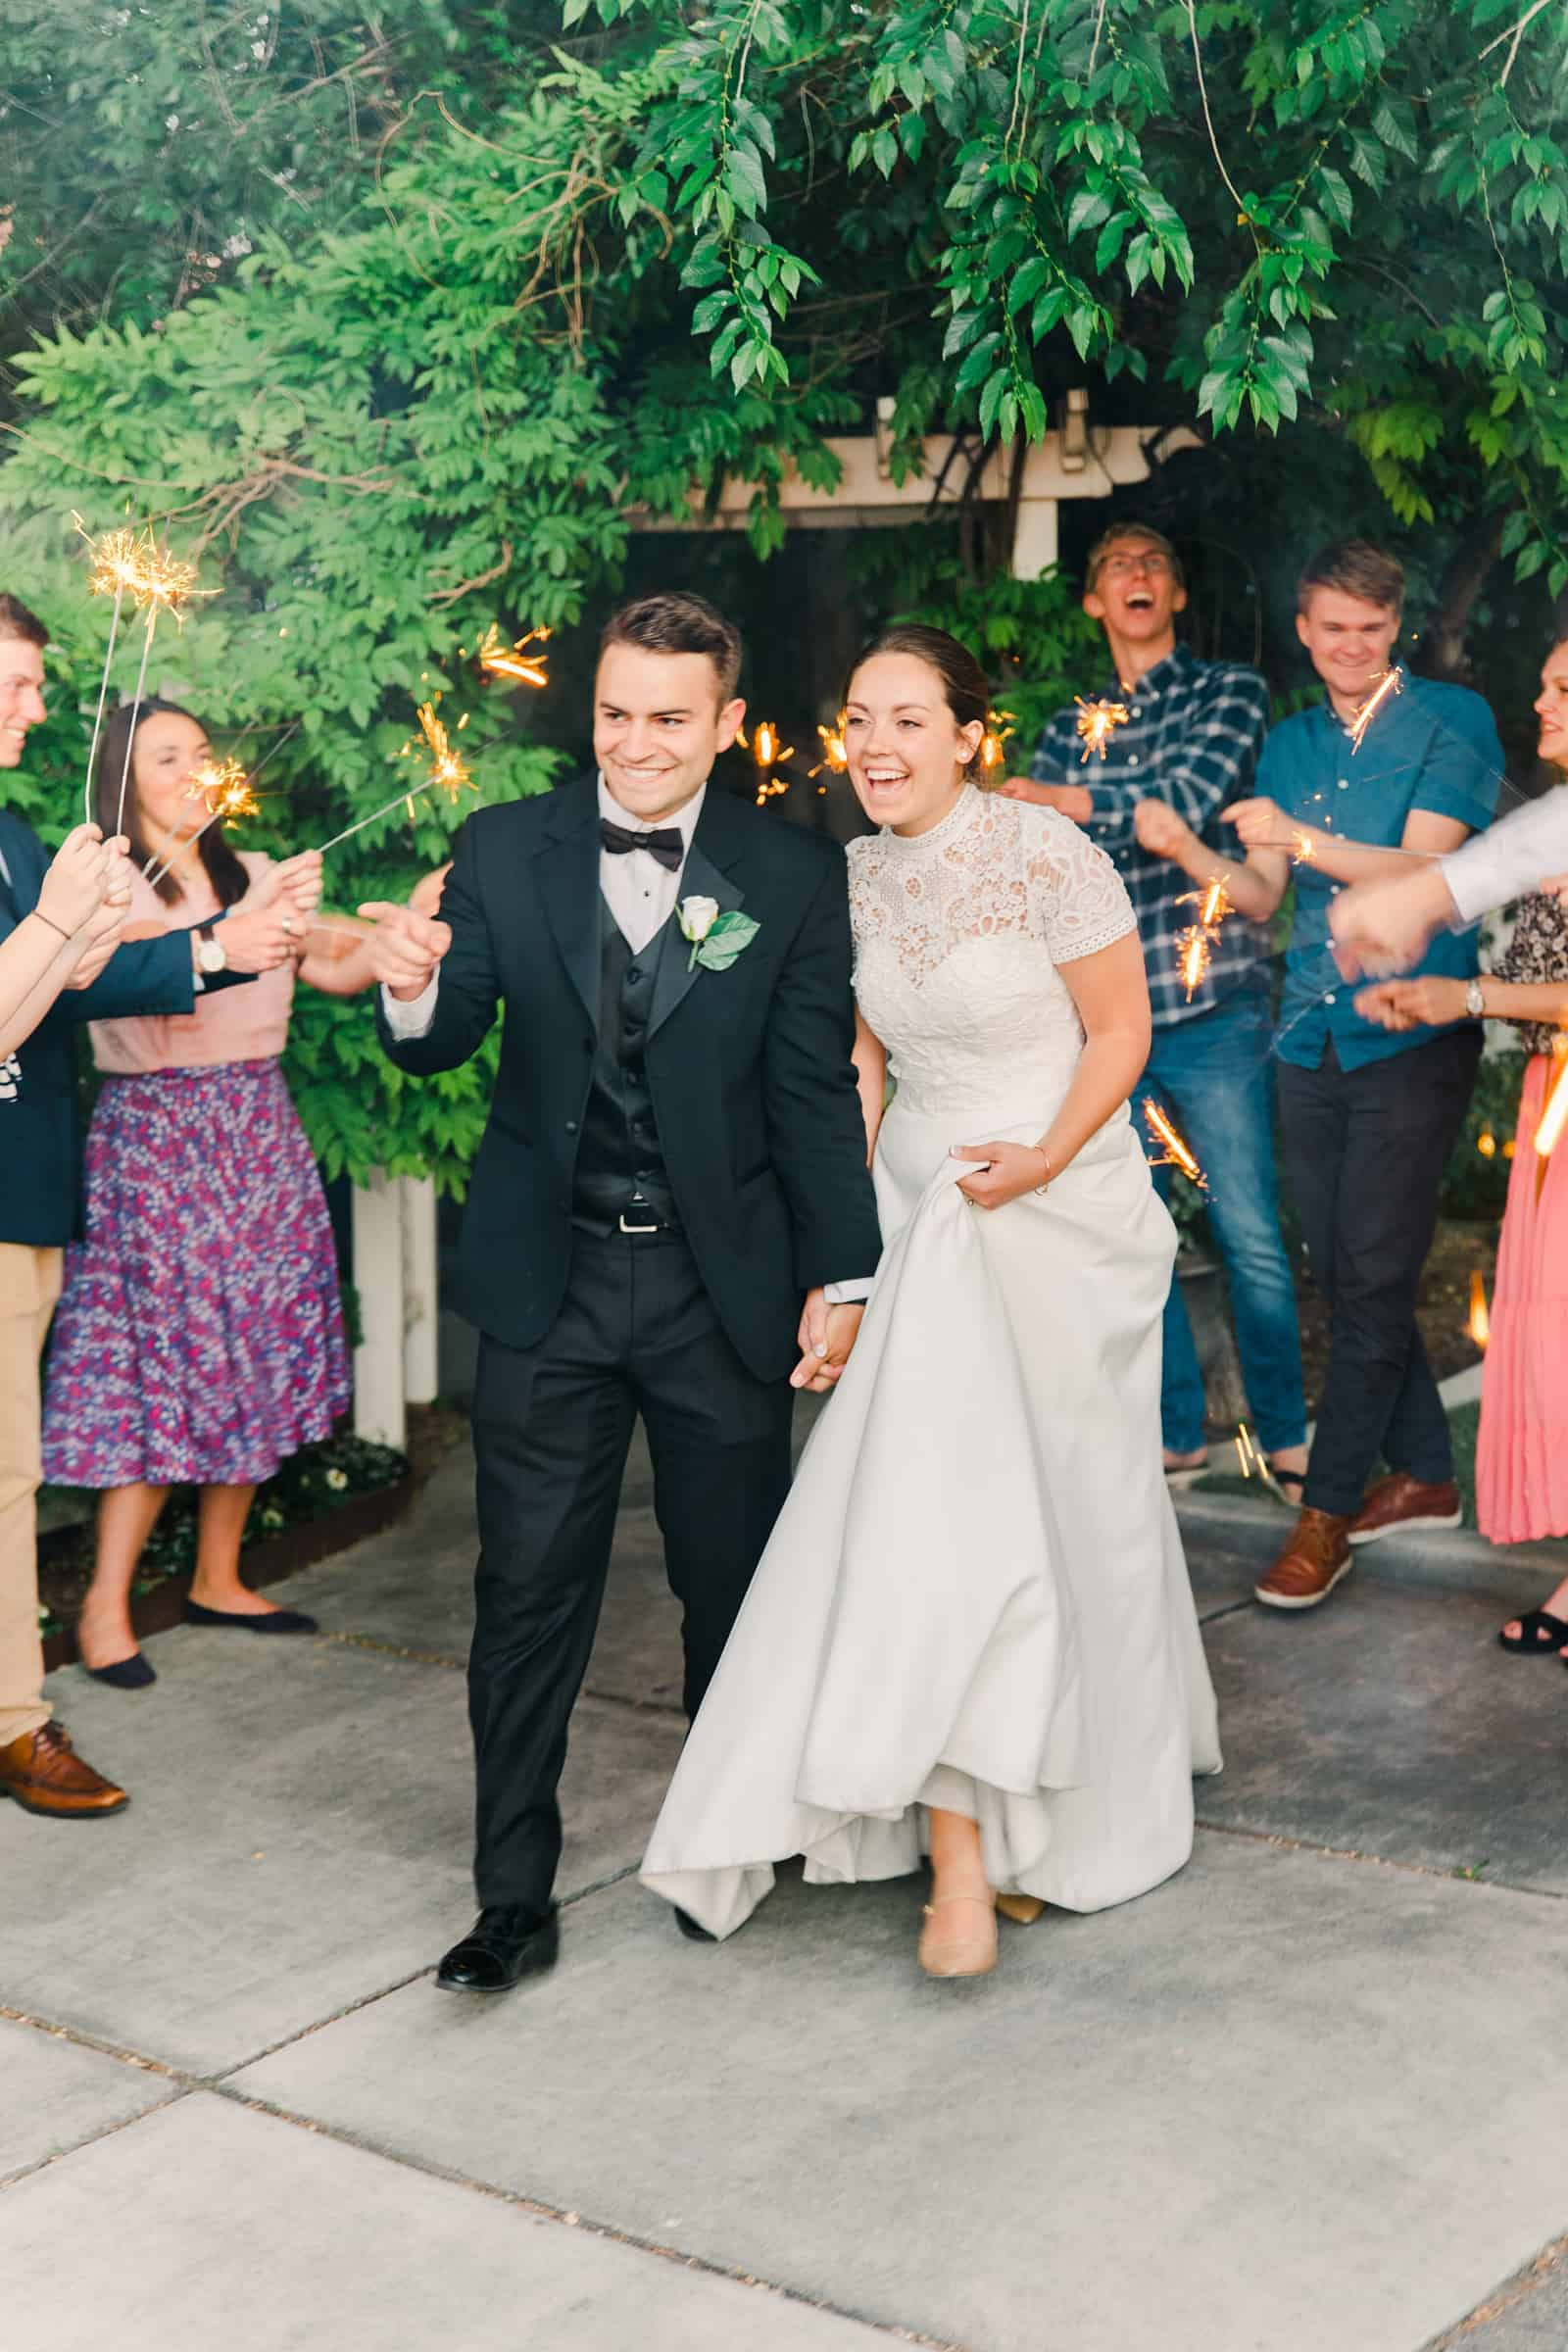 Clarion Gardens Payson Utah Wedding, bride and groom sparkler send off exit